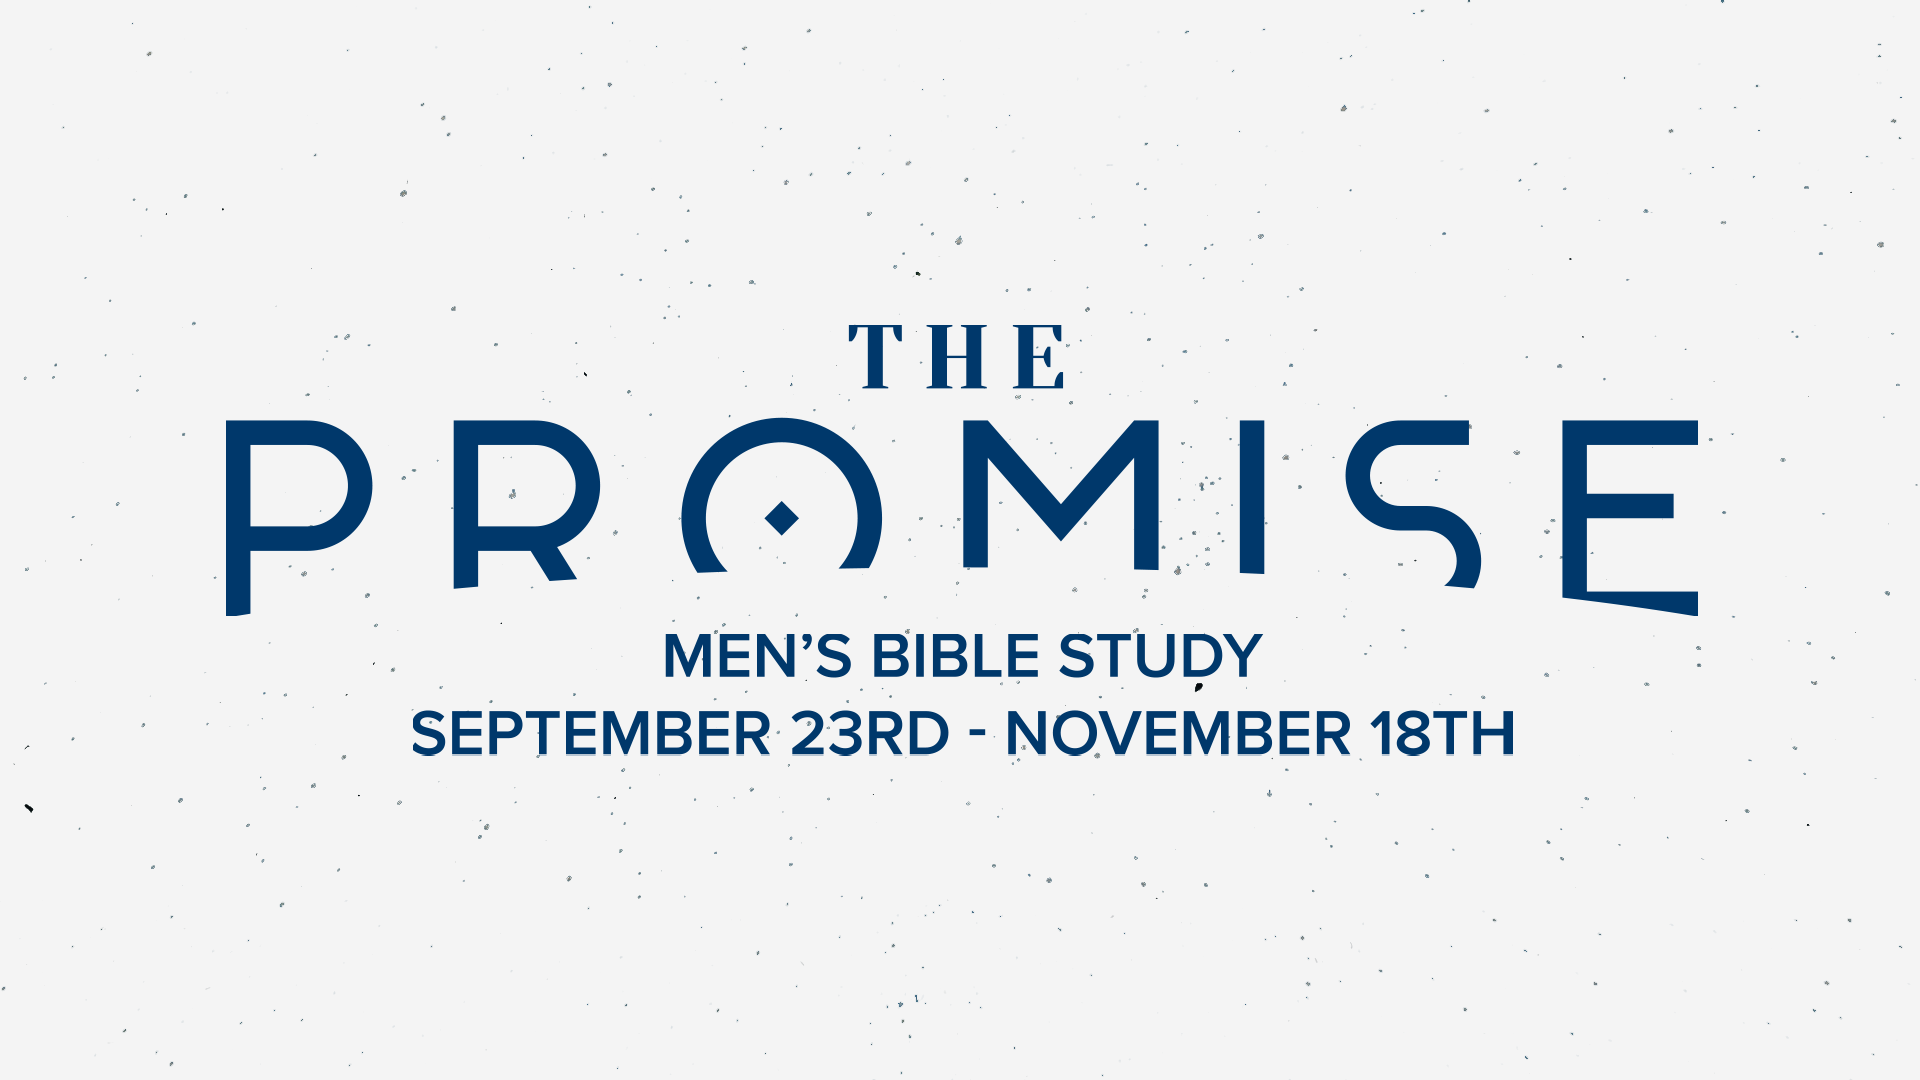 CP-Mens-Bible-Study-1920x1080.png